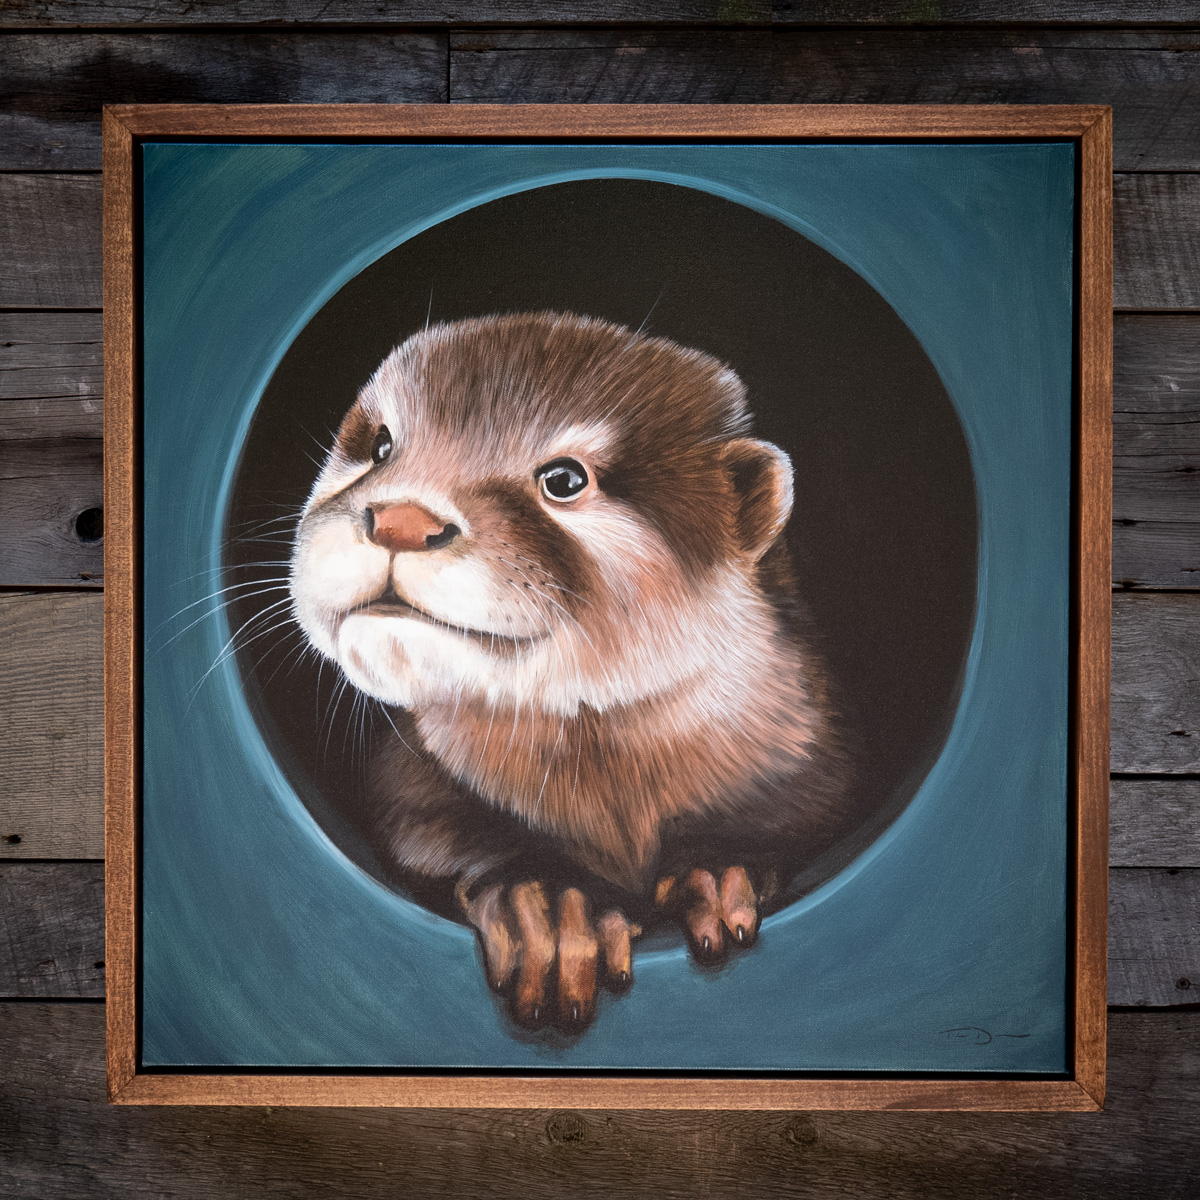 The Curious Otter - Original oil painting by wildlife artist Timothy Davison of the Davison Art Company featuring an asian small clawed otter looking out from a hole, creating a trompe l'oeil effect. Framed in a custom hardwood floating frame. © COPYRIGHT TIMOTHY DAVISON